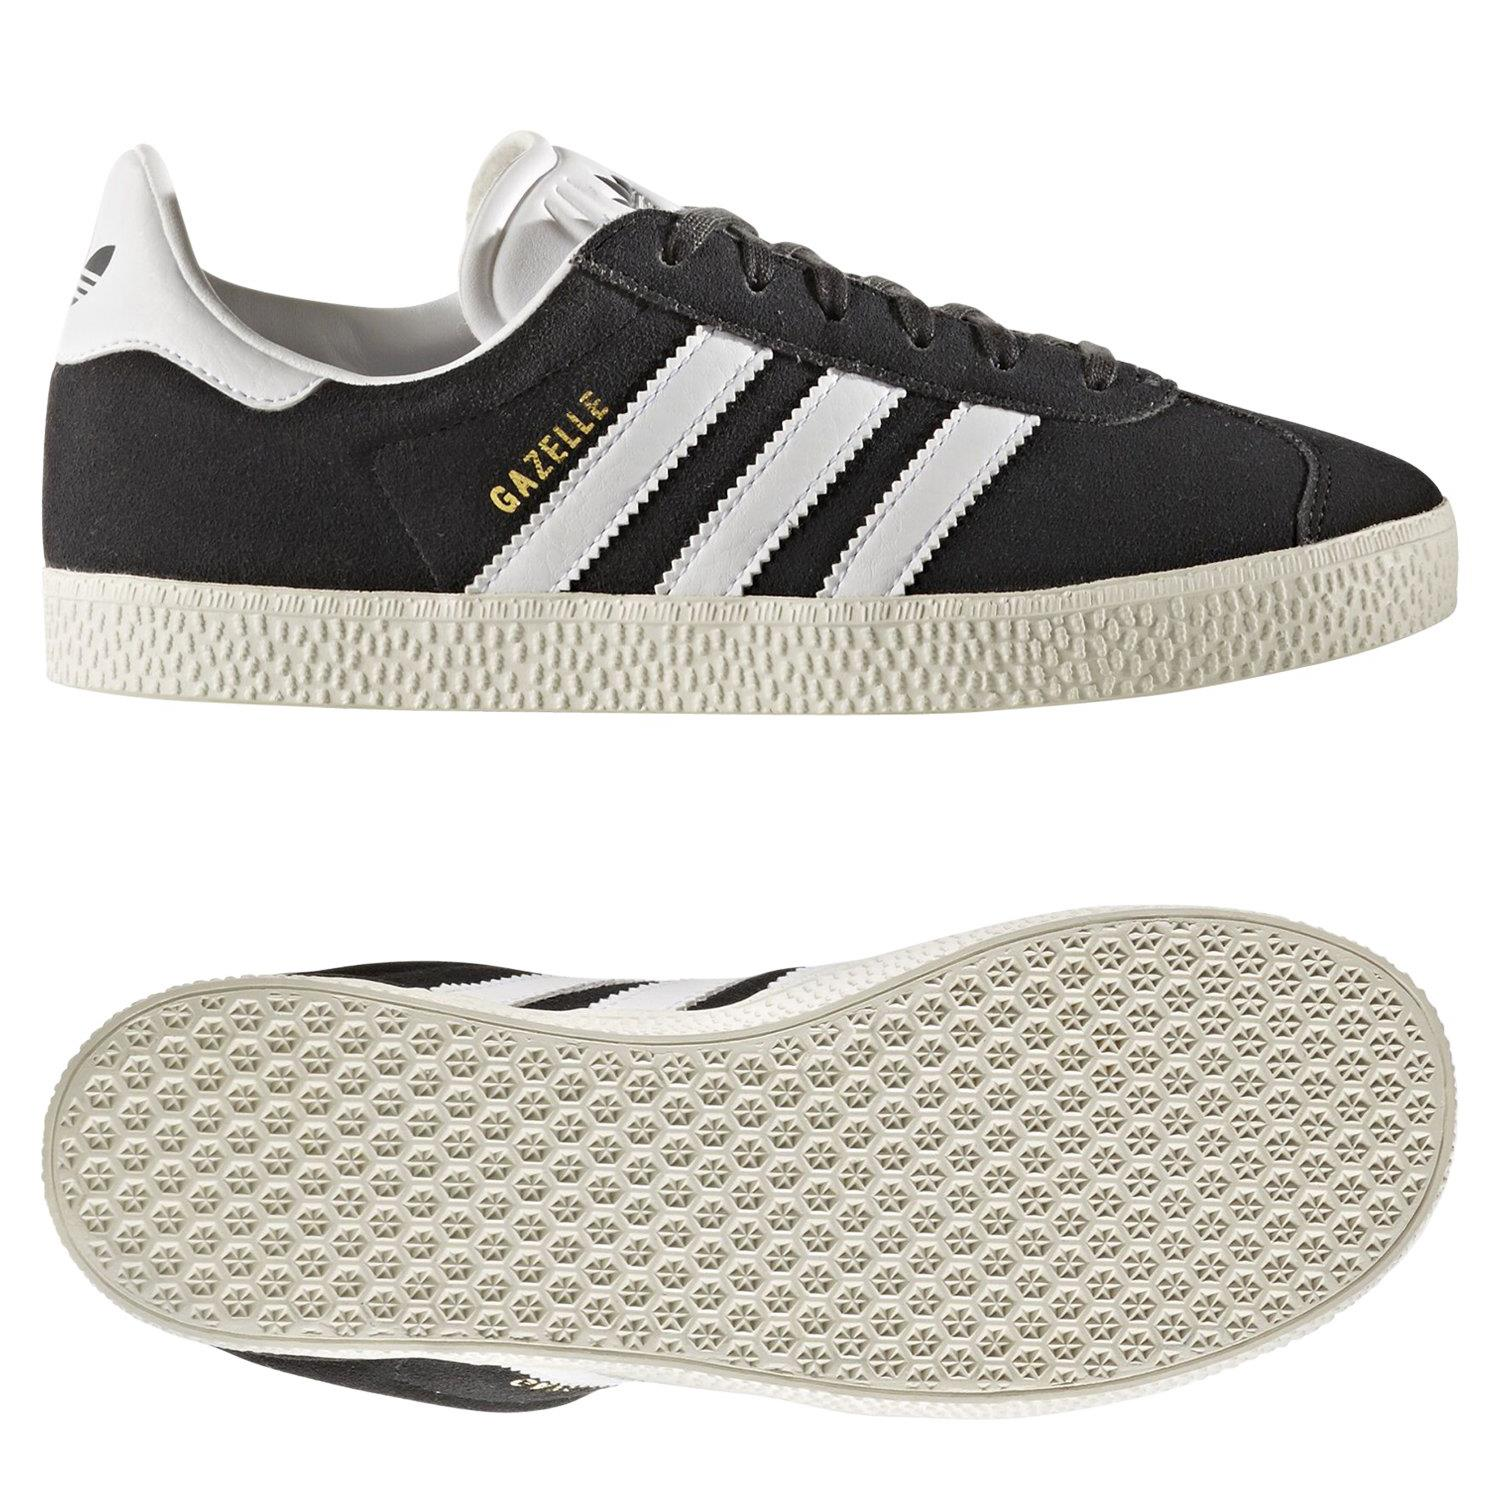 Details about adidas ORIGINALS GAZELLE TRAINERS GREY TREFOIL JUNIOR KIDS SHOES SNEAKERS SPORTS